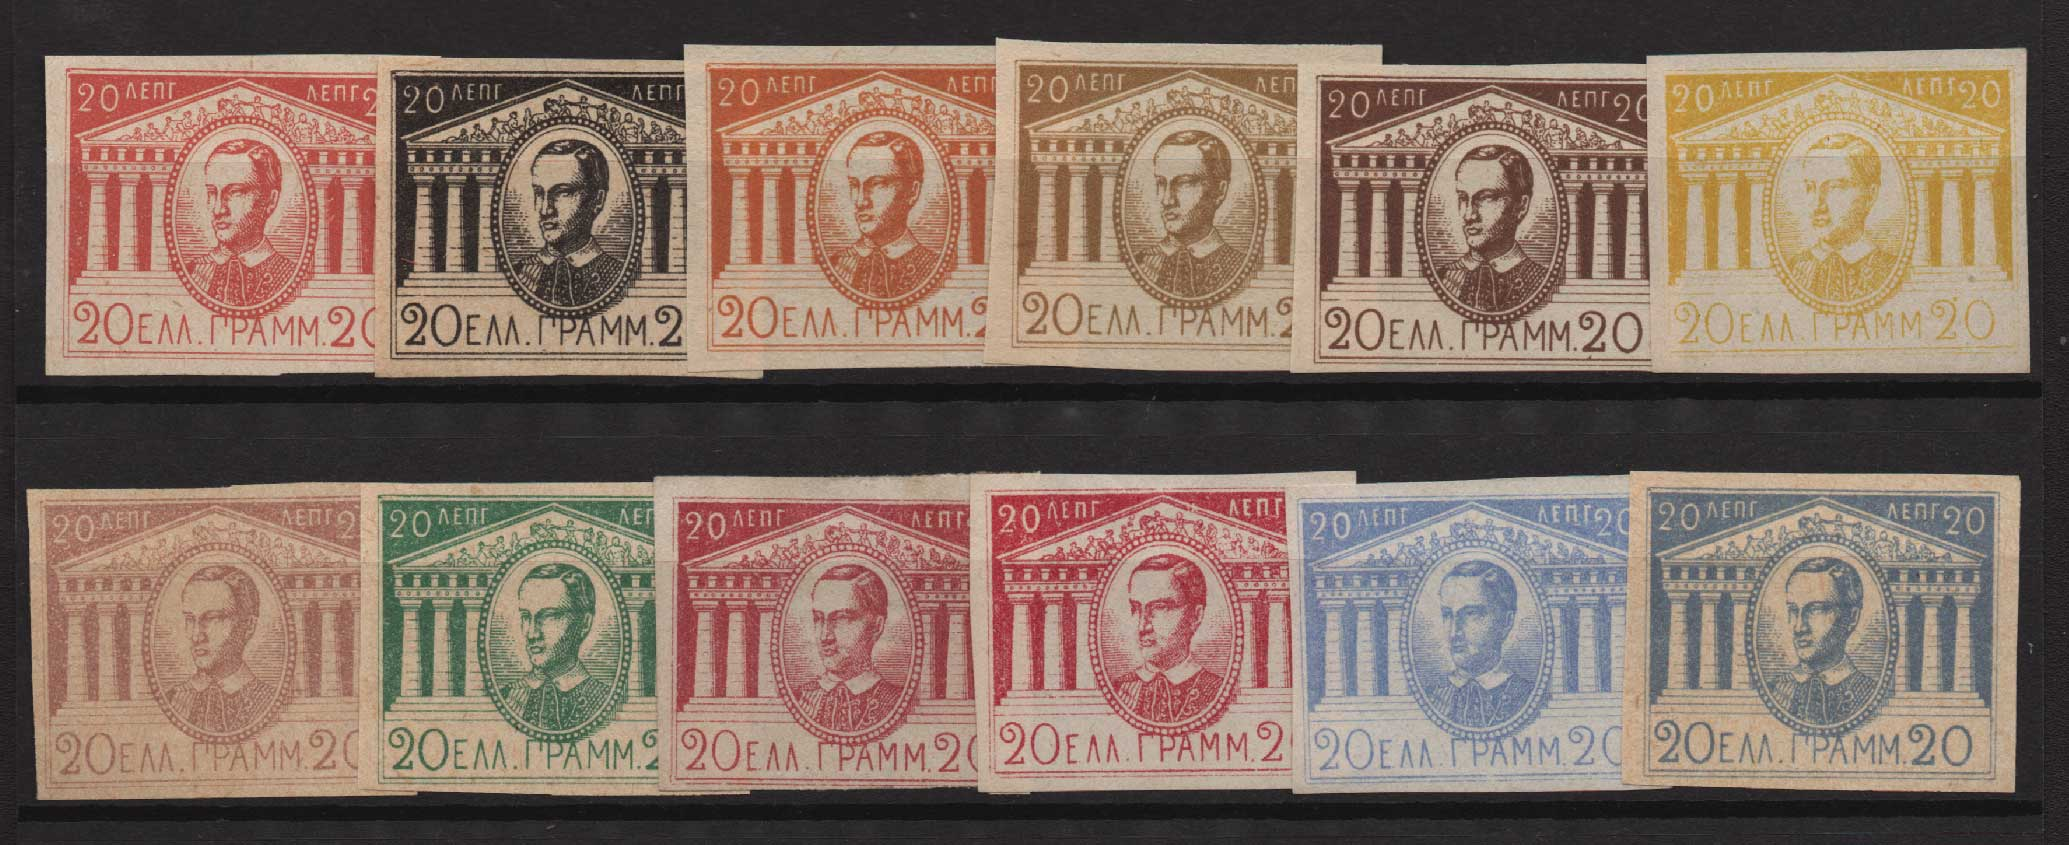 Lot 1503 - -  MISCELLANEOUS LOTS & ACCUMULATIONS MISCELLANEOUS LOTS & ACCUMULATIONS -  Athens Auctions Public Auction 89 General Stamp Sale